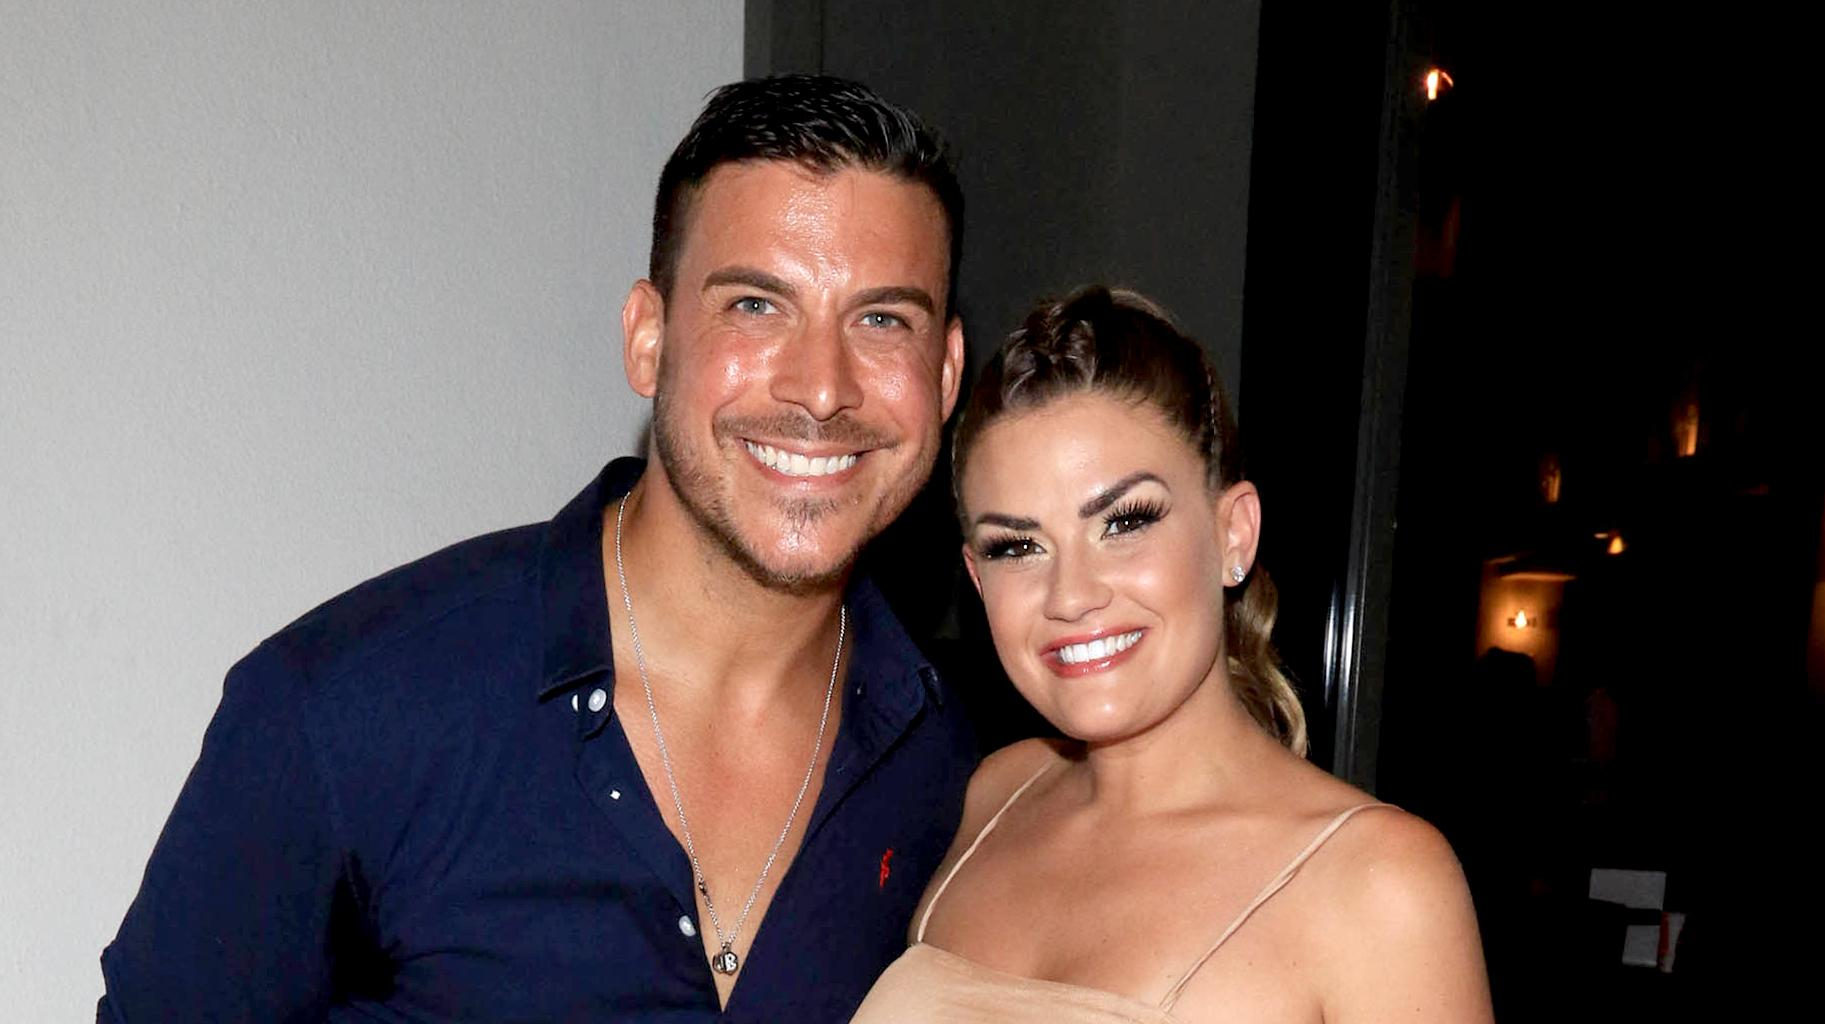 Jax Taylor And Brittany Cartwright - Their 'Vanderpump Rules' Co-Stars Were Reportedly 'Blindsided'  By Their Exit!